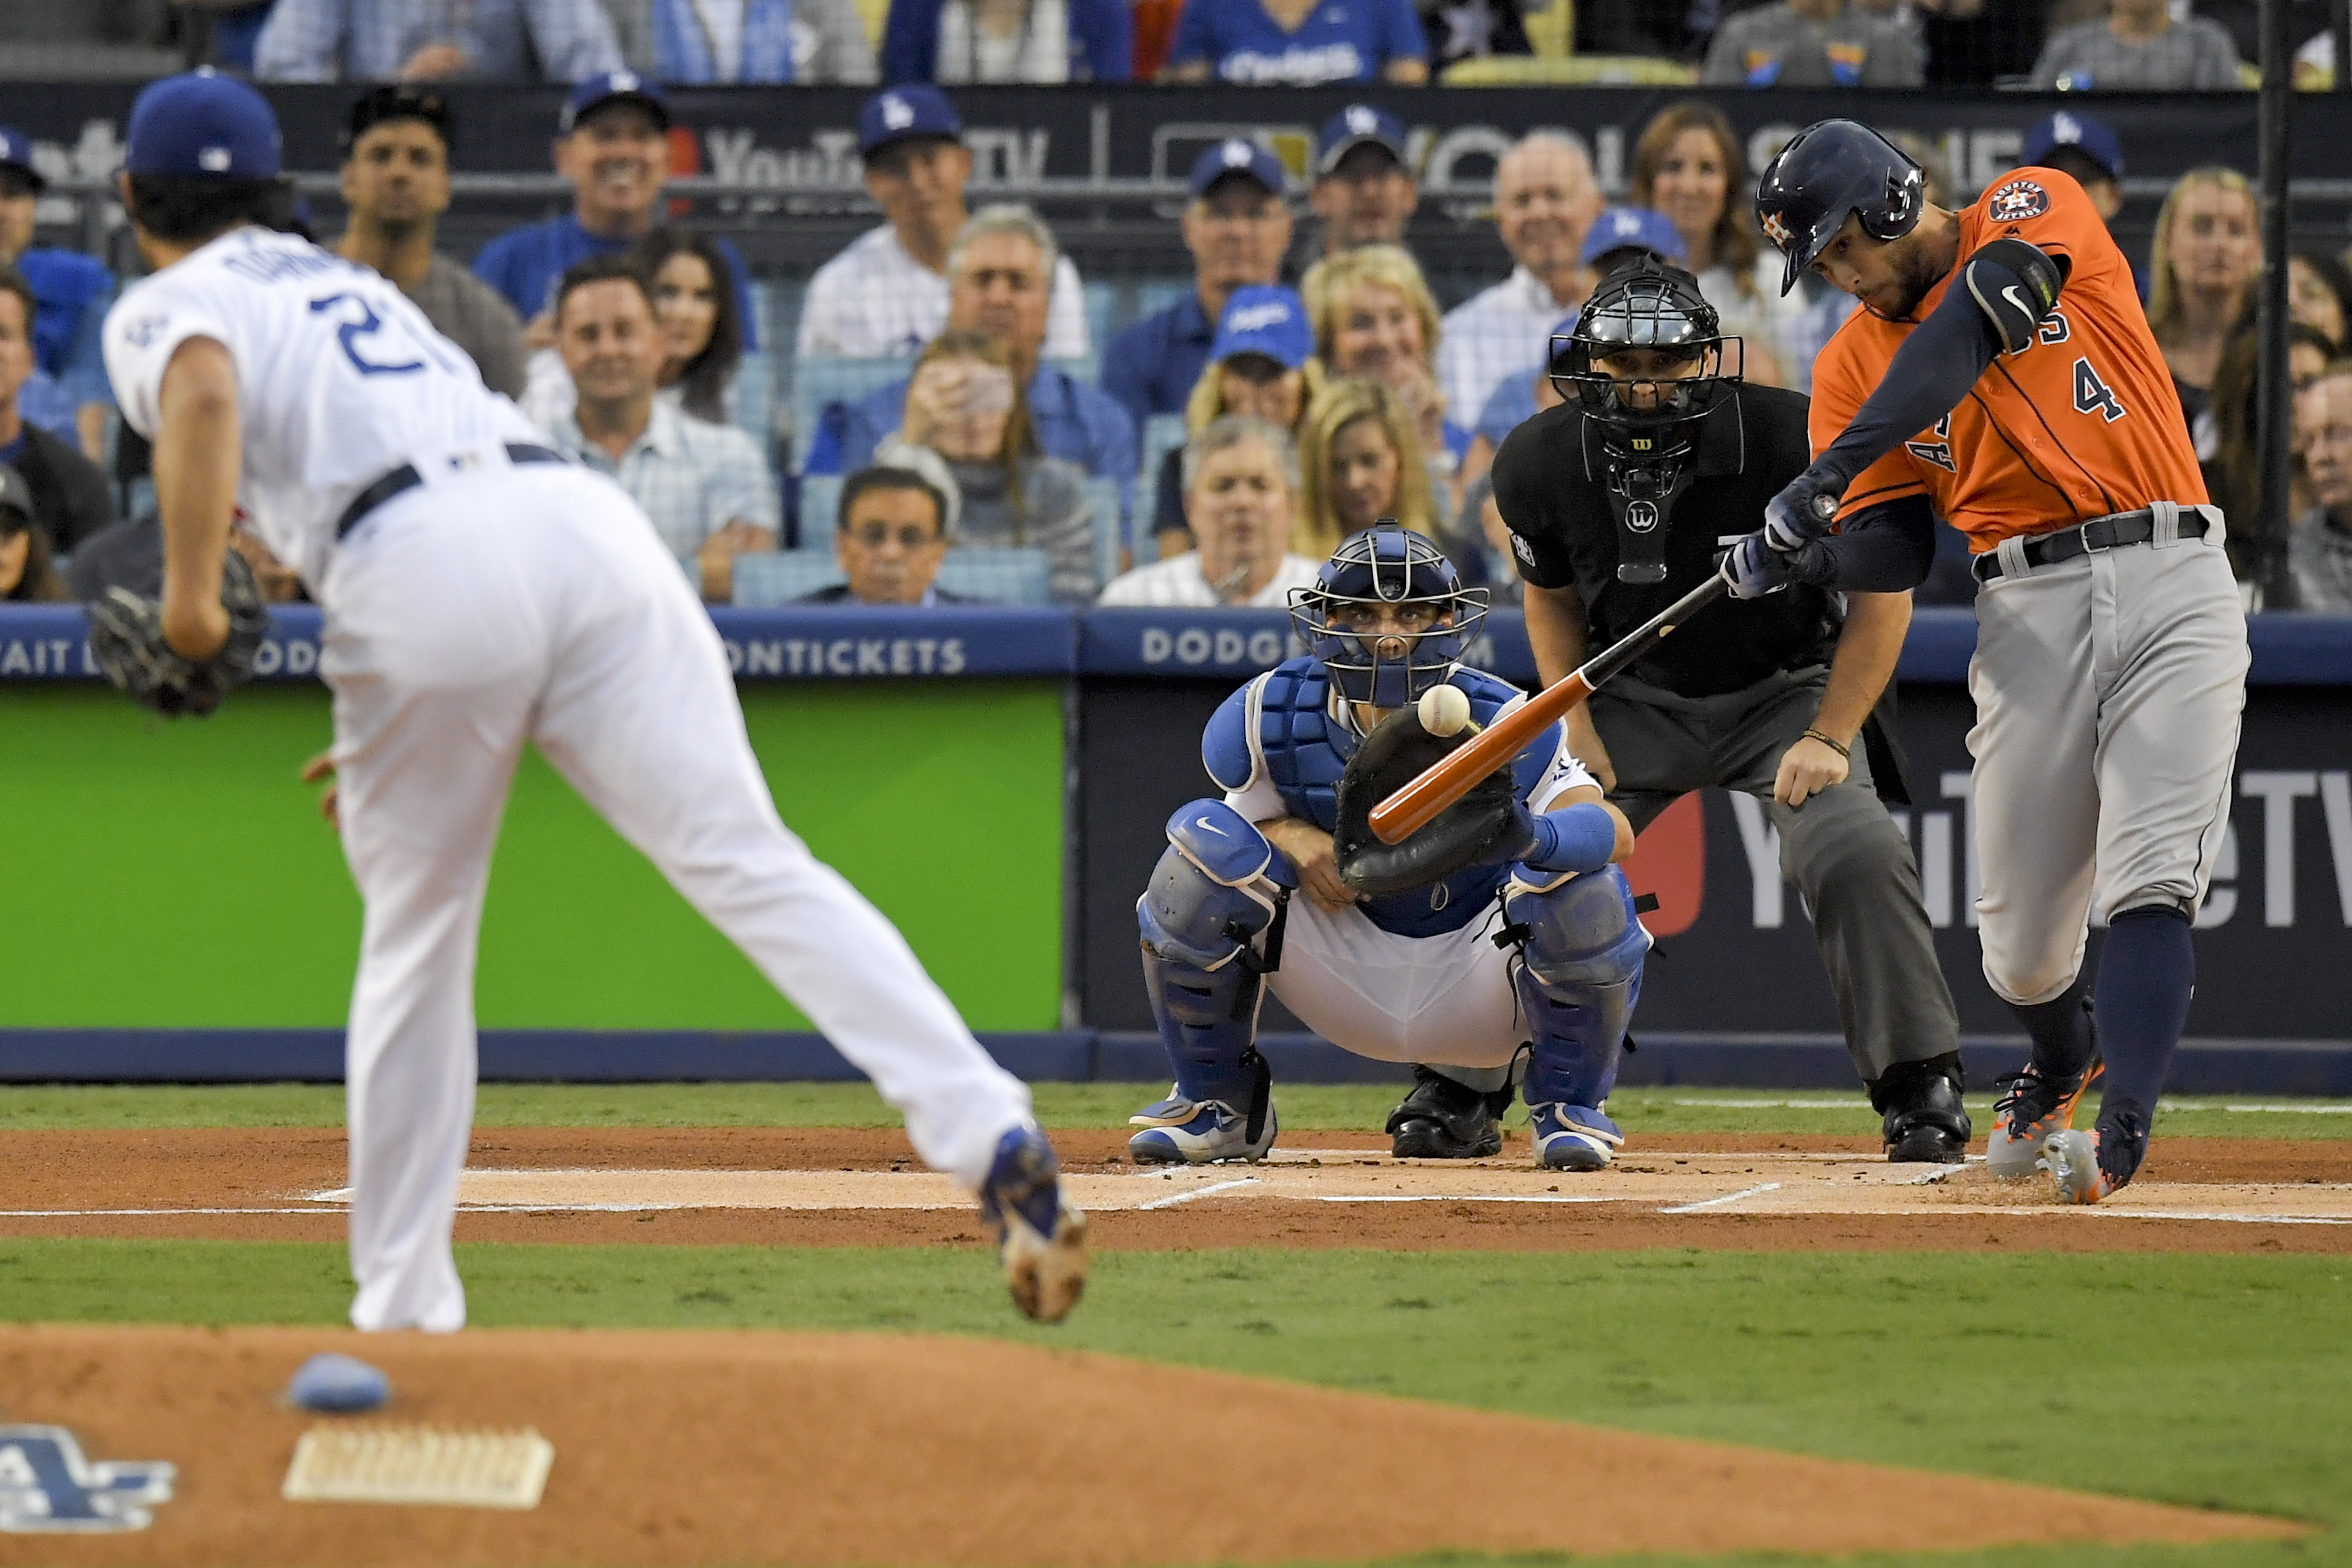 "<div class=""meta image-caption""><div class=""origin-logo origin-image ap""><span>AP</span></div><span class=""caption-text"">Houston Astros' George Springer, right, hits a double off Los Angeles Dodgers starting pitcher Yu Darvish, of Japan, during the first inning of Game 7. (AP Photo/Mark J. Terrill) (AP)</span></div>"